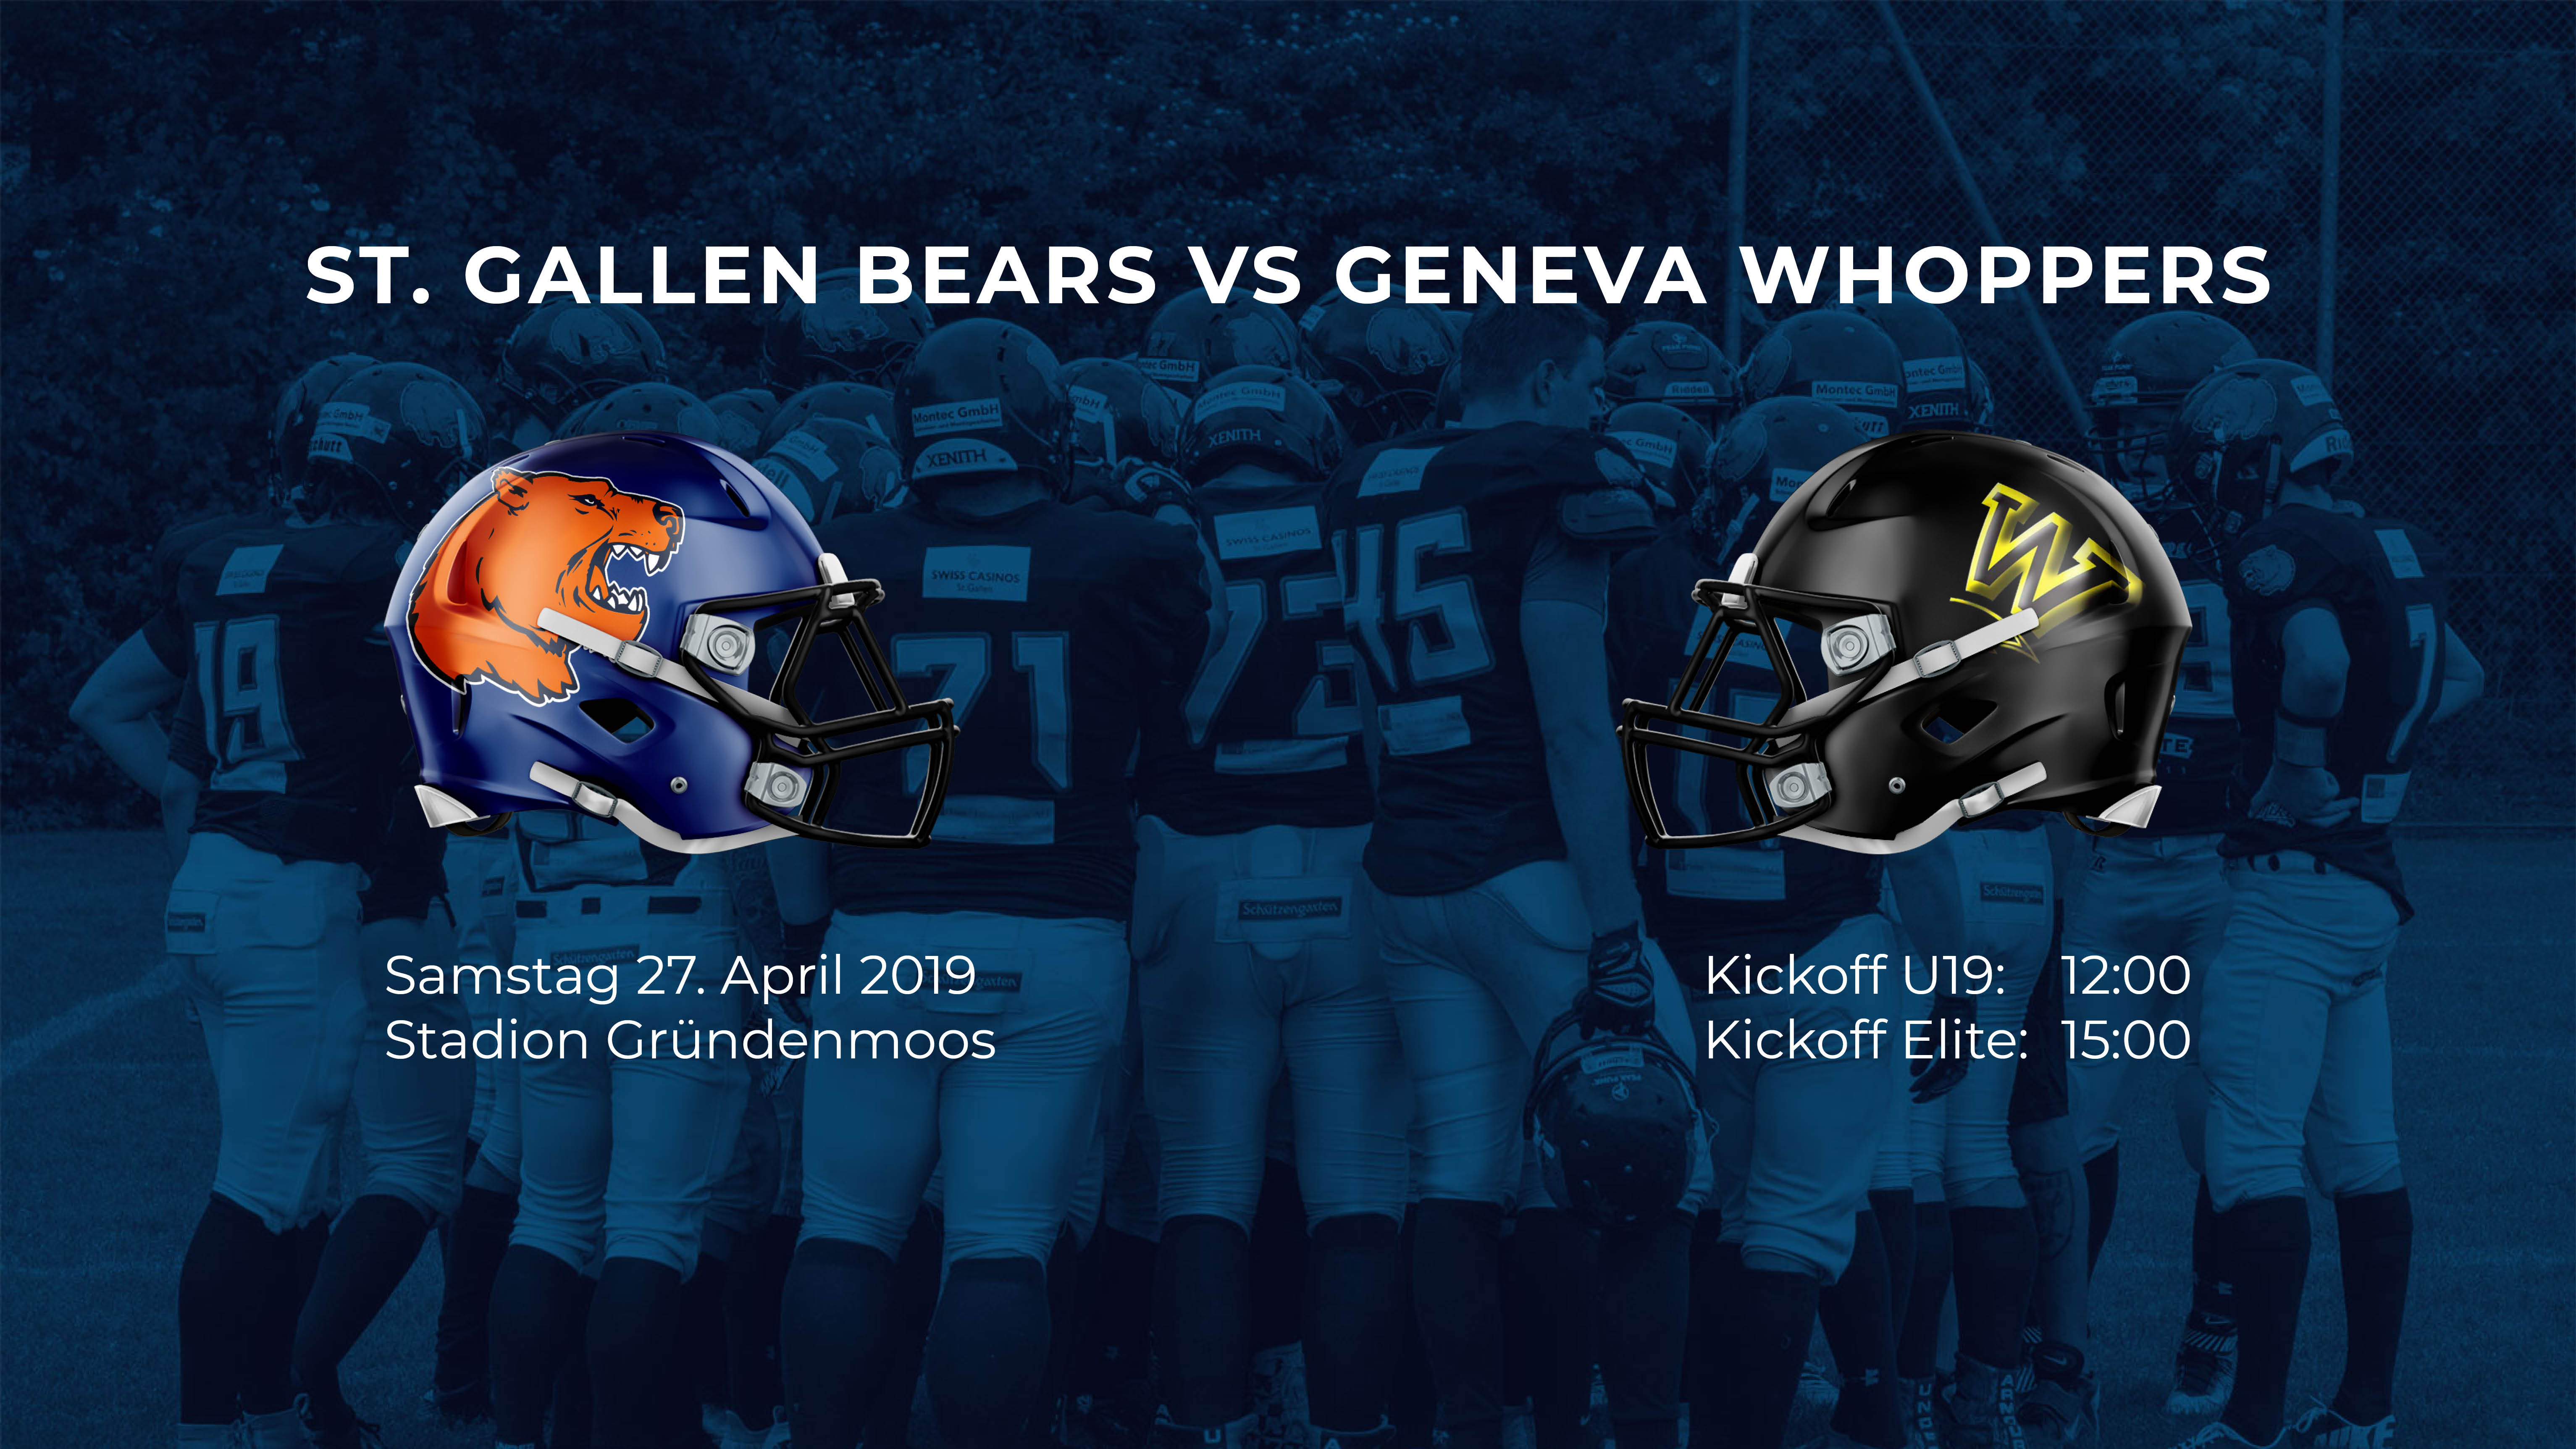 St. Gallen Bears Vs Geneva Whopers